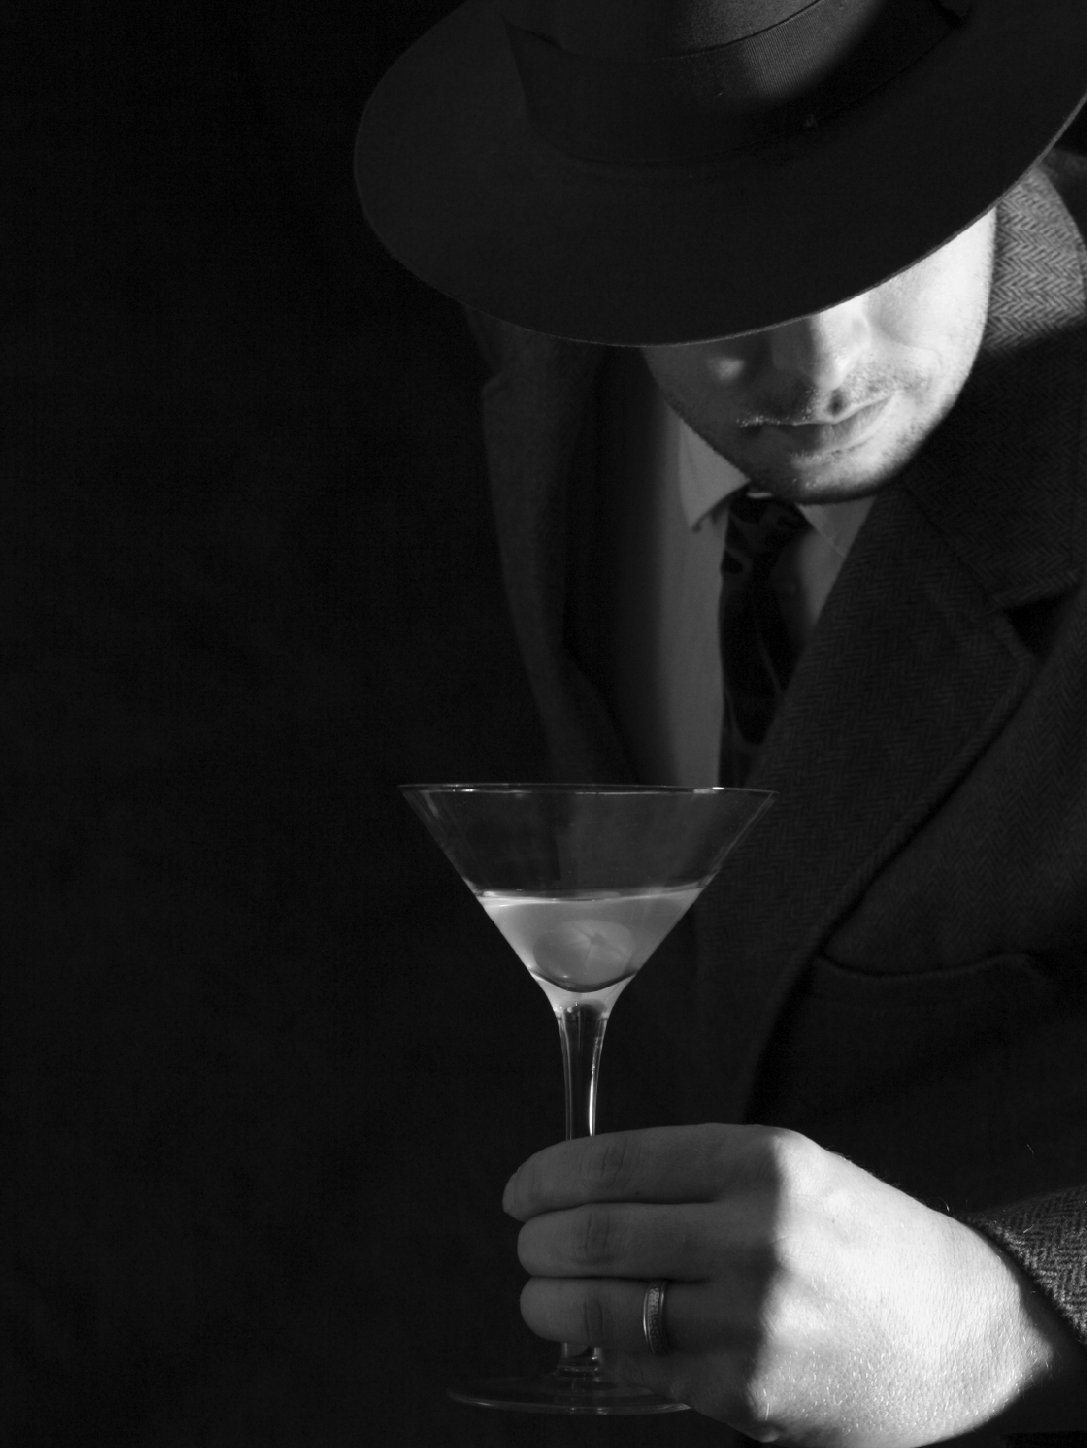 The martini: international drink of mystery? Photo: iStockphoto.com